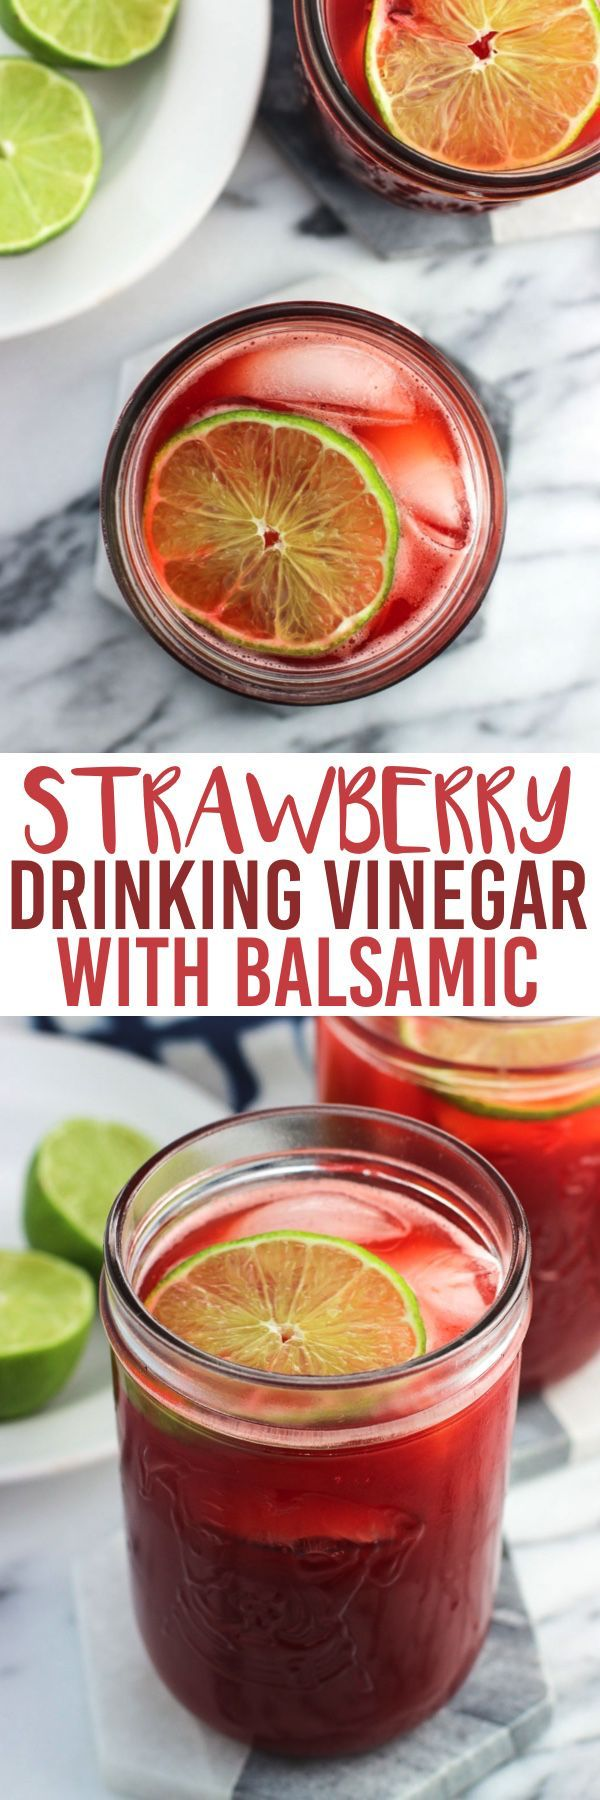 Strawberry drinking vinegar with balsamic is a fruity, refreshing way to drink apple cider vinegar without any 'burn'. This drink is naturally-sweetened.